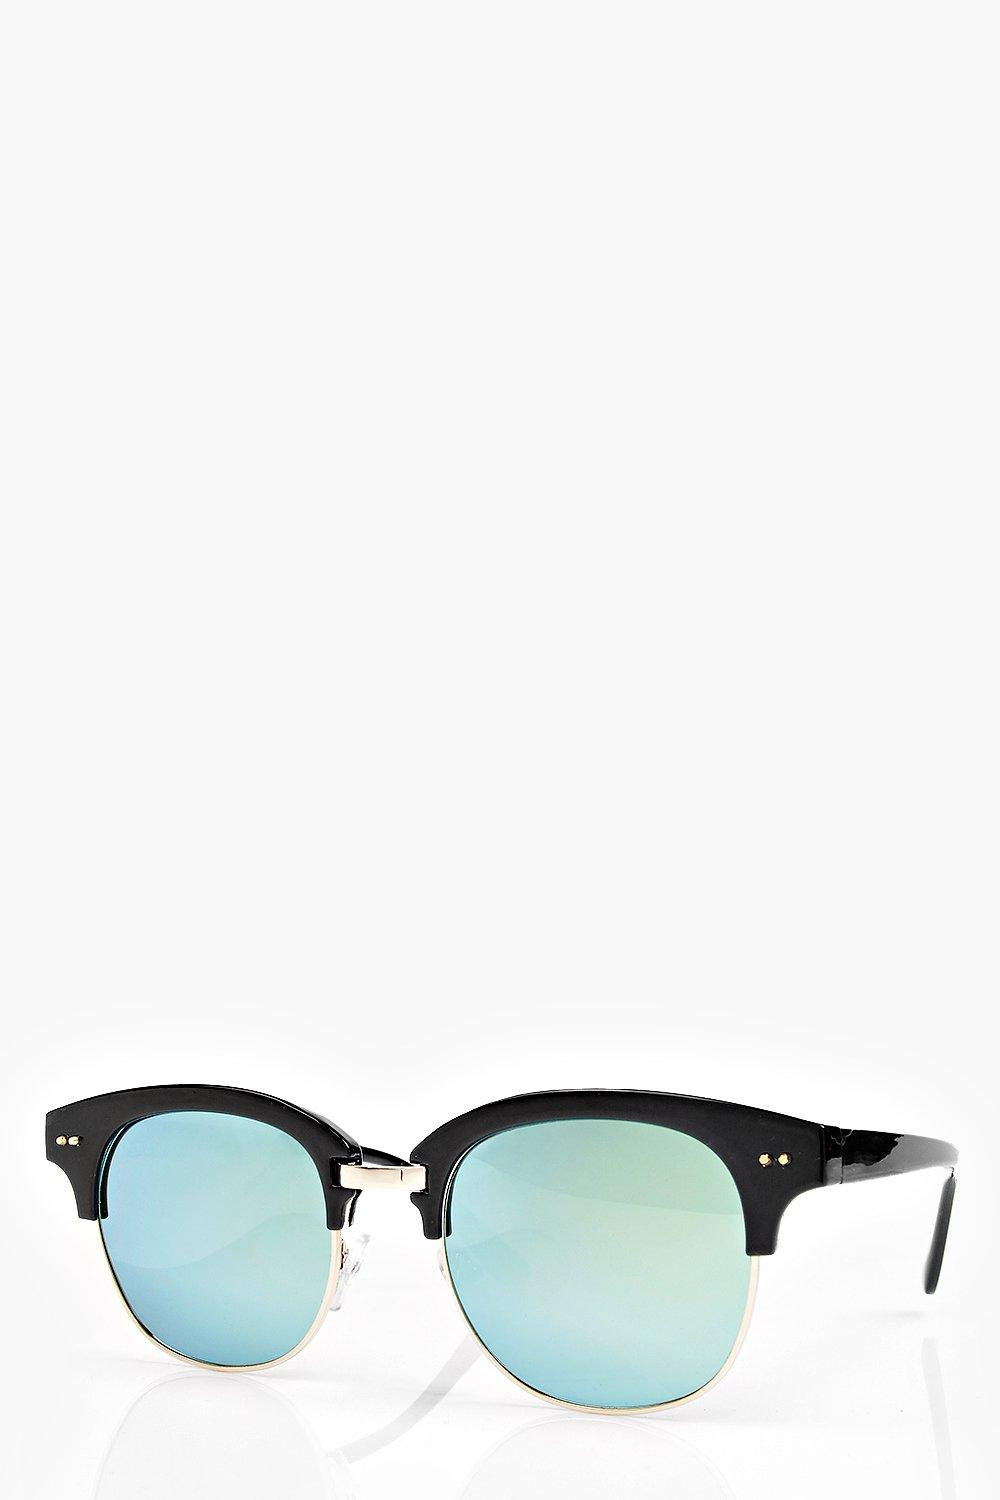 Boohoo Womens Eva Mirrored Half Frame Wayfarer Sunglasses ...